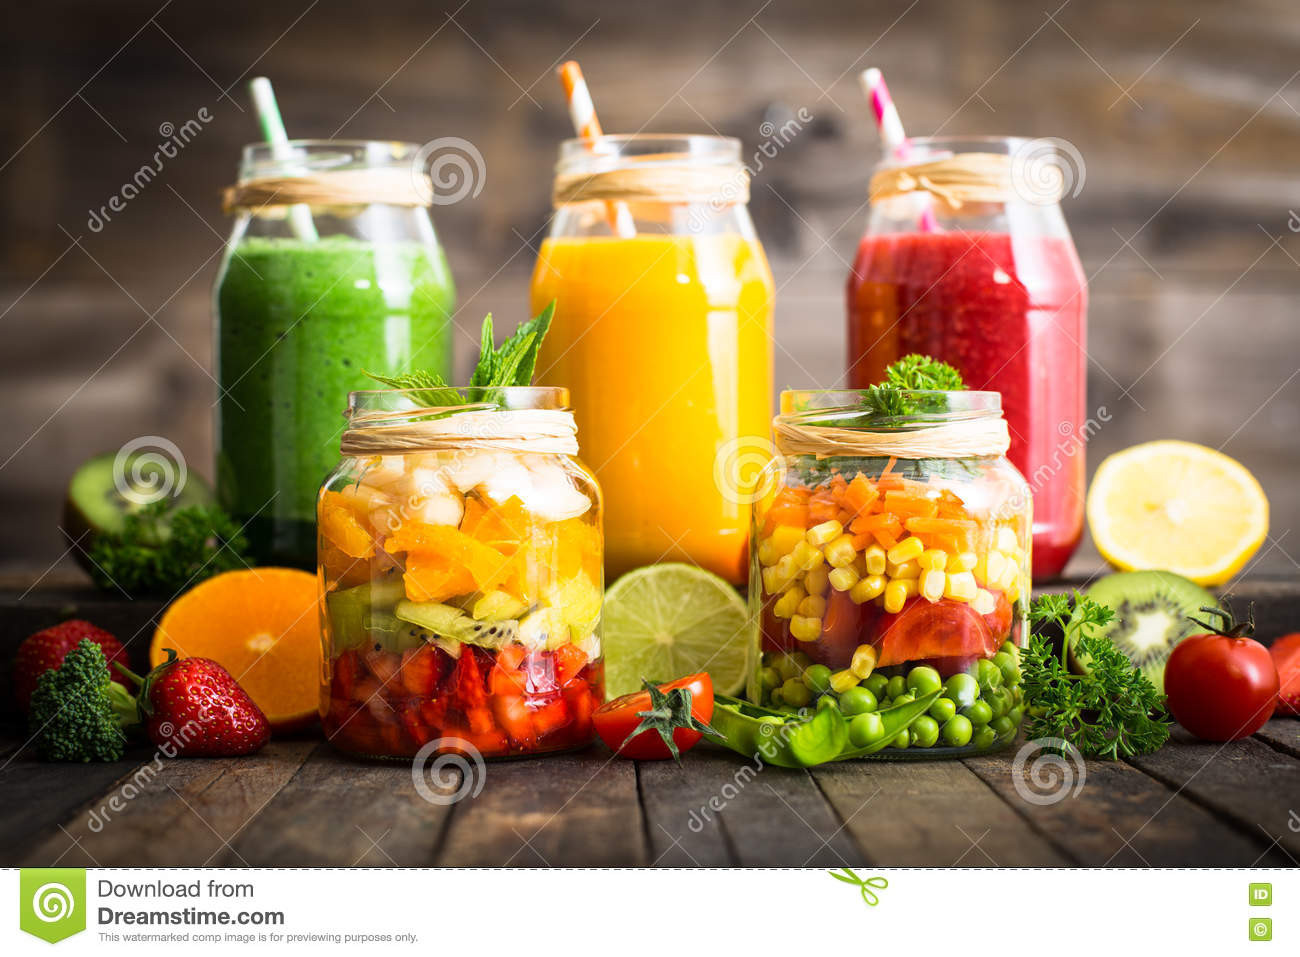 Healthy Fruit And Vegetable Smoothies  Healthy Fruit And Ve able Salad And Smoothies Stock